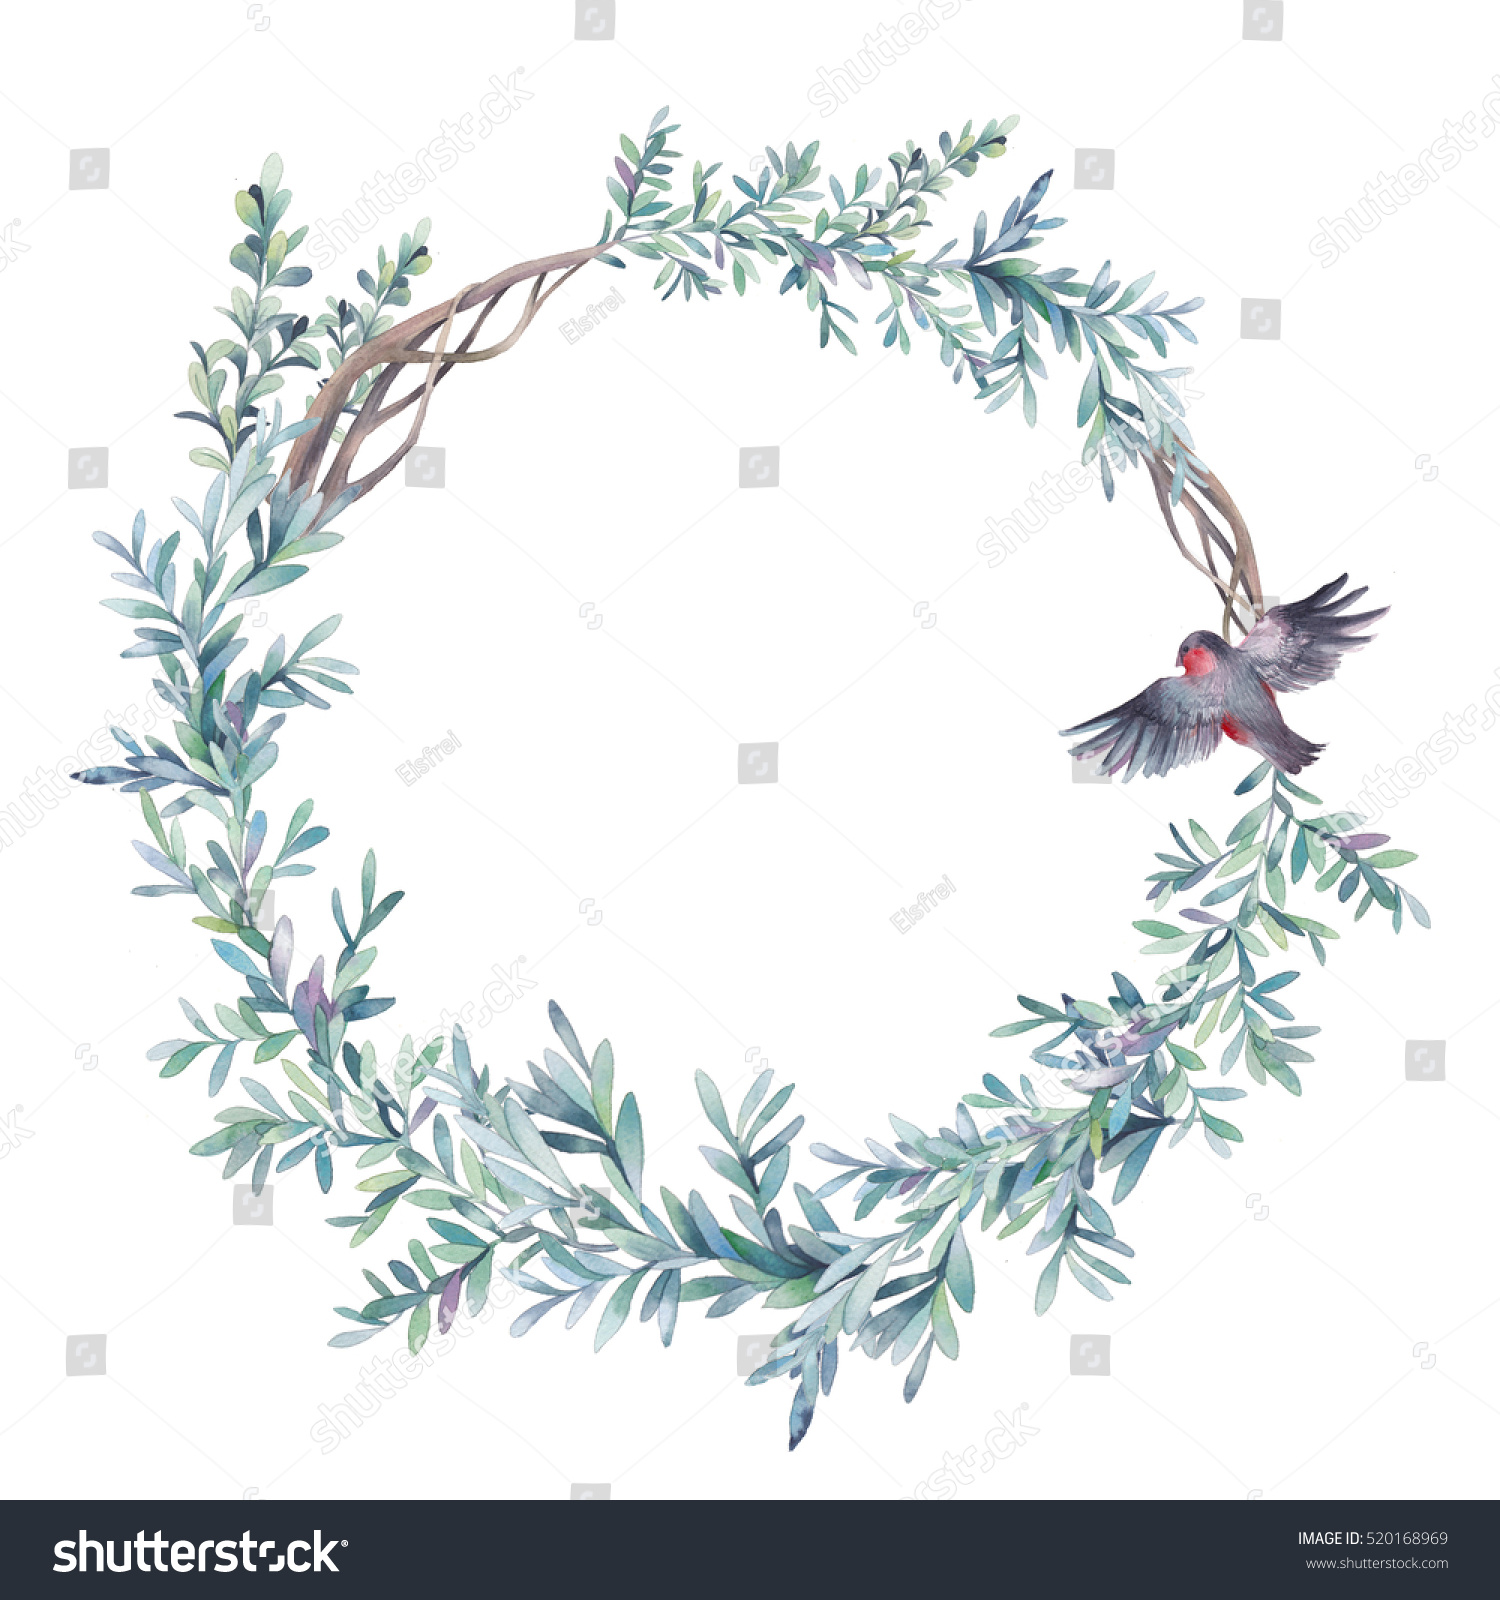 Watercolor winter floral wreath bullfinch bird stock - White painted tree branches ...